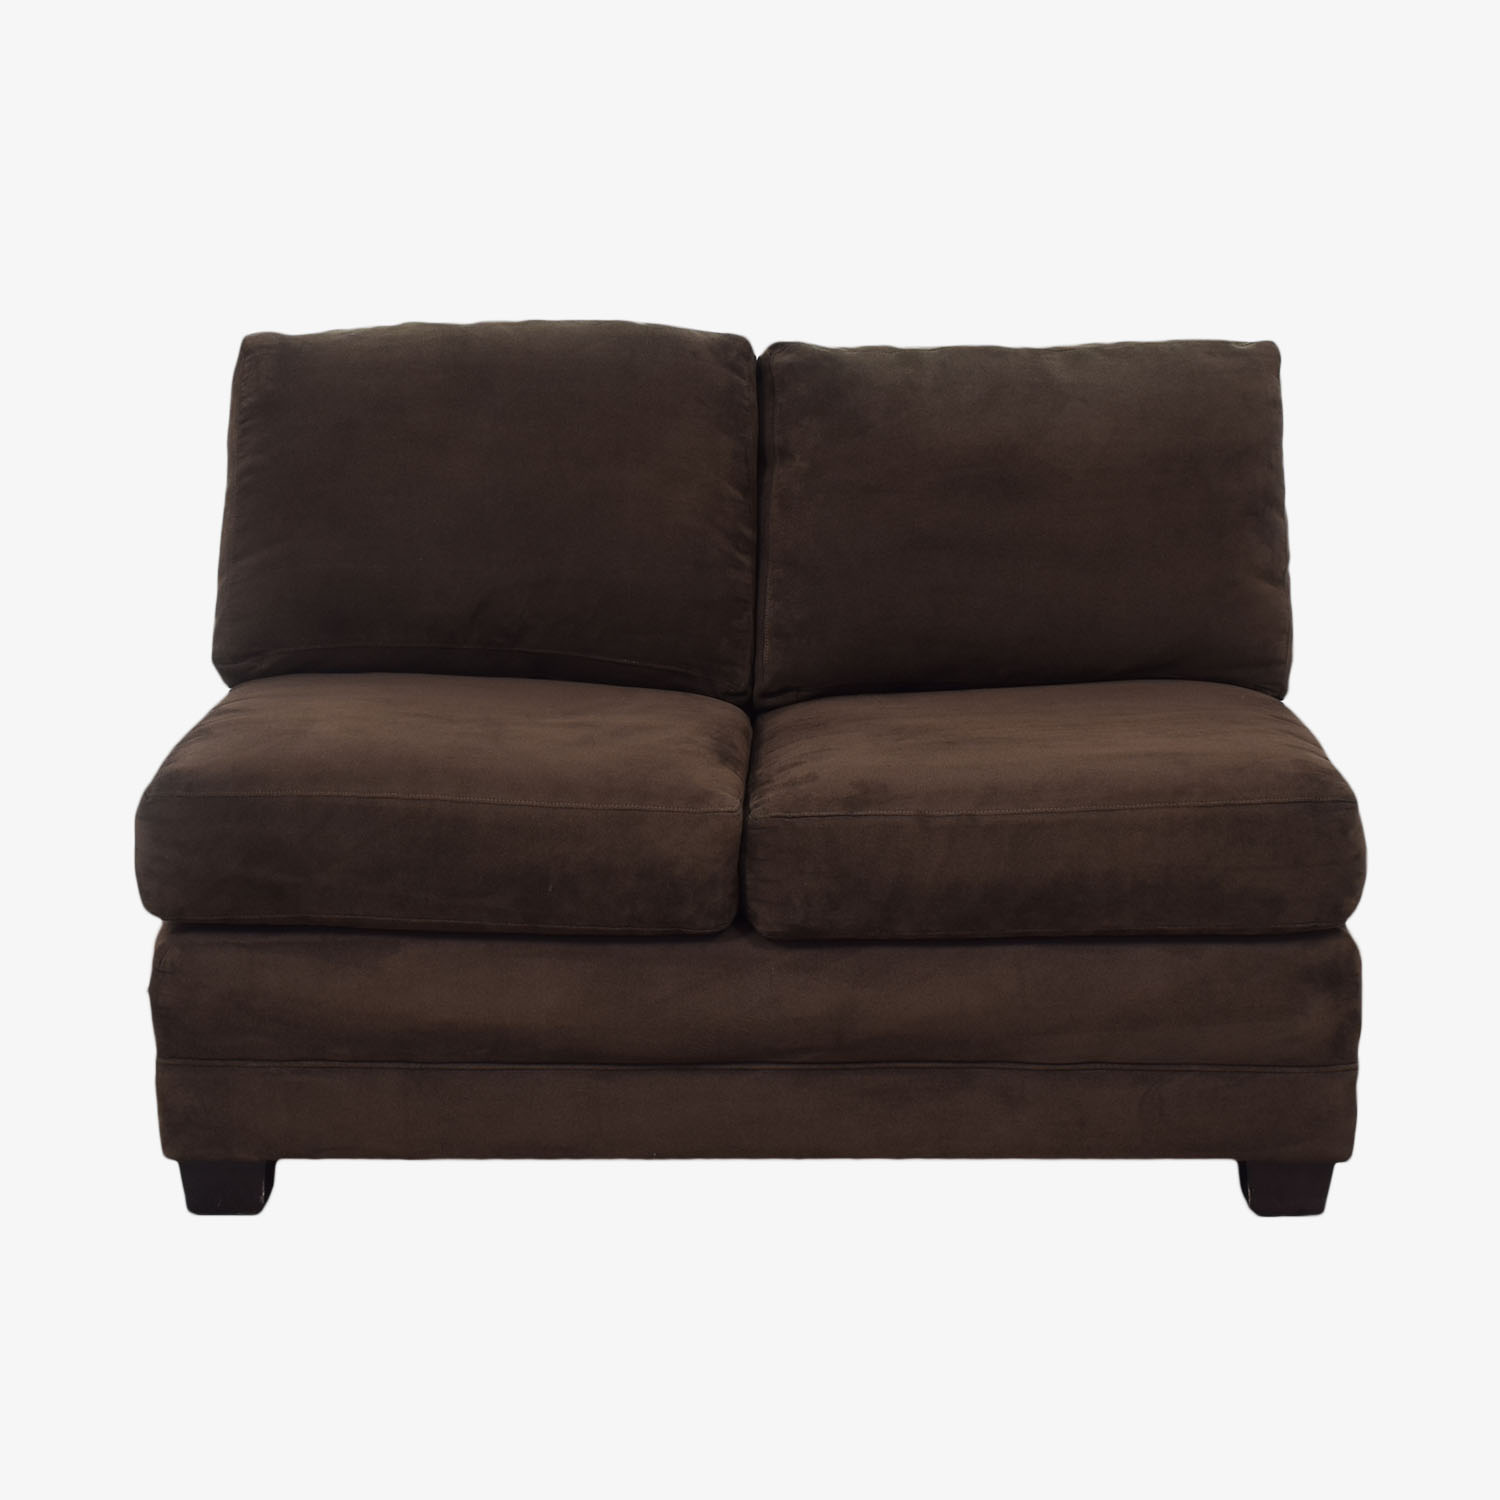 buy Crate & Barrel Crate & Barrel Axis II Armless Loveseat online